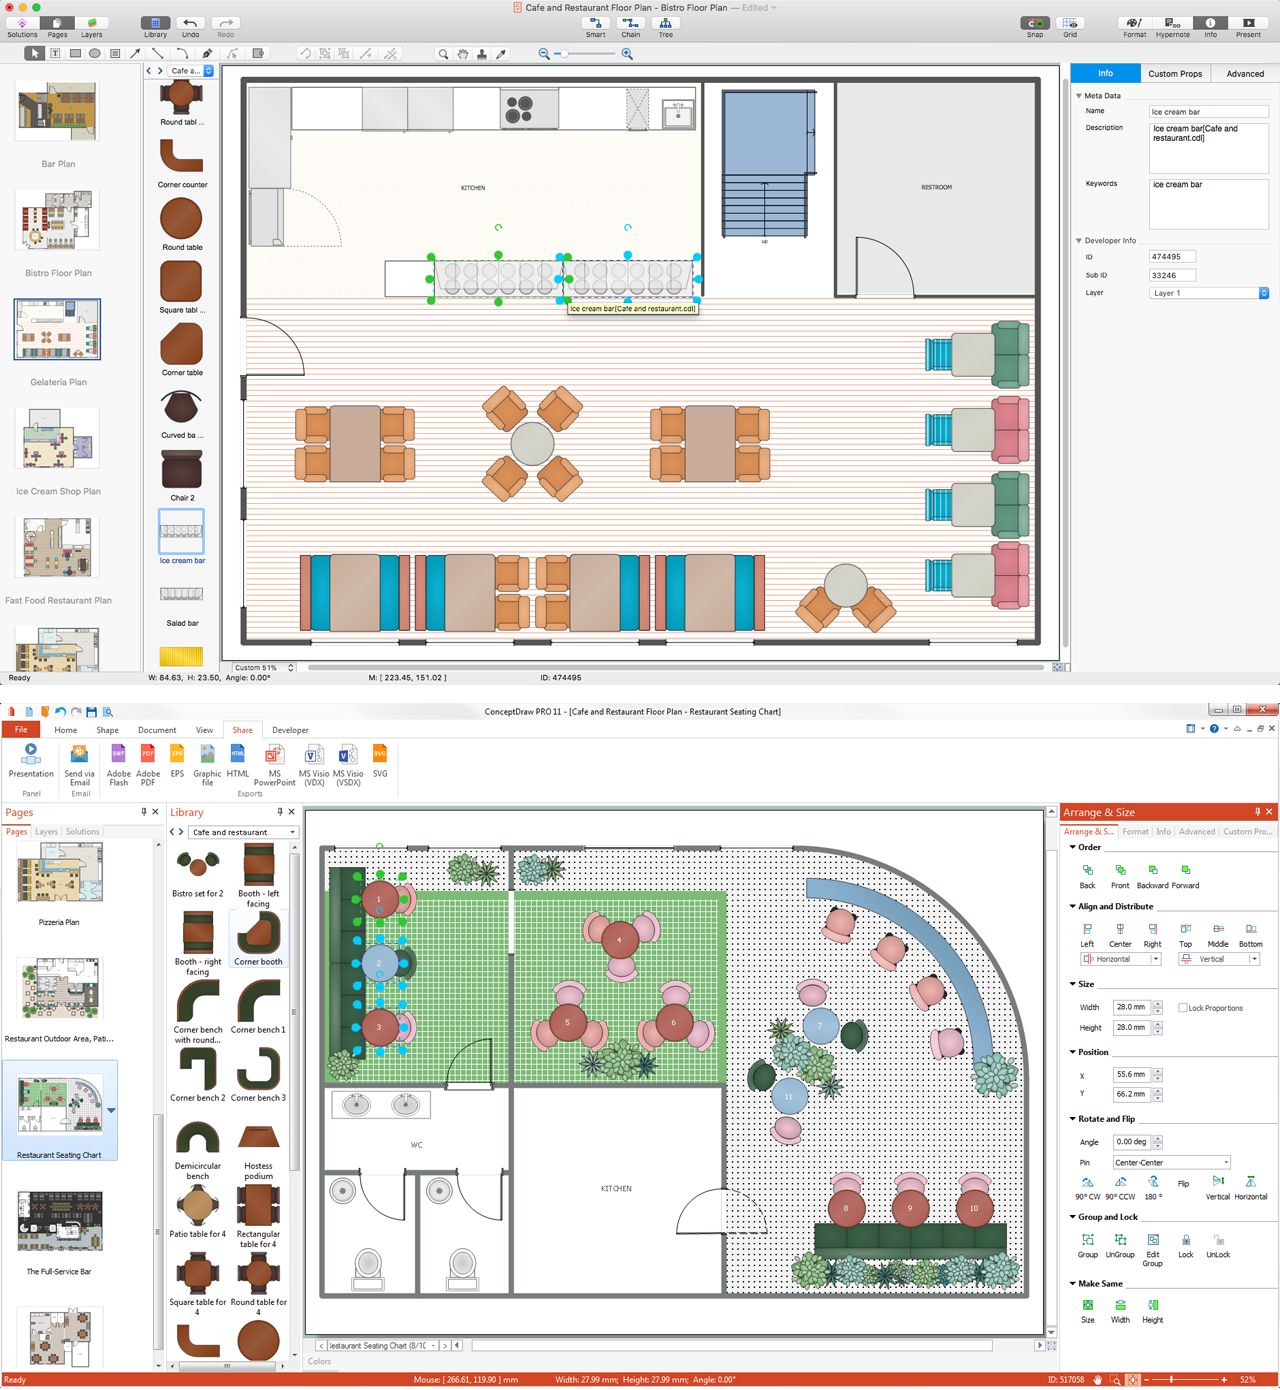 Interior design software building plan examples for House construction plan